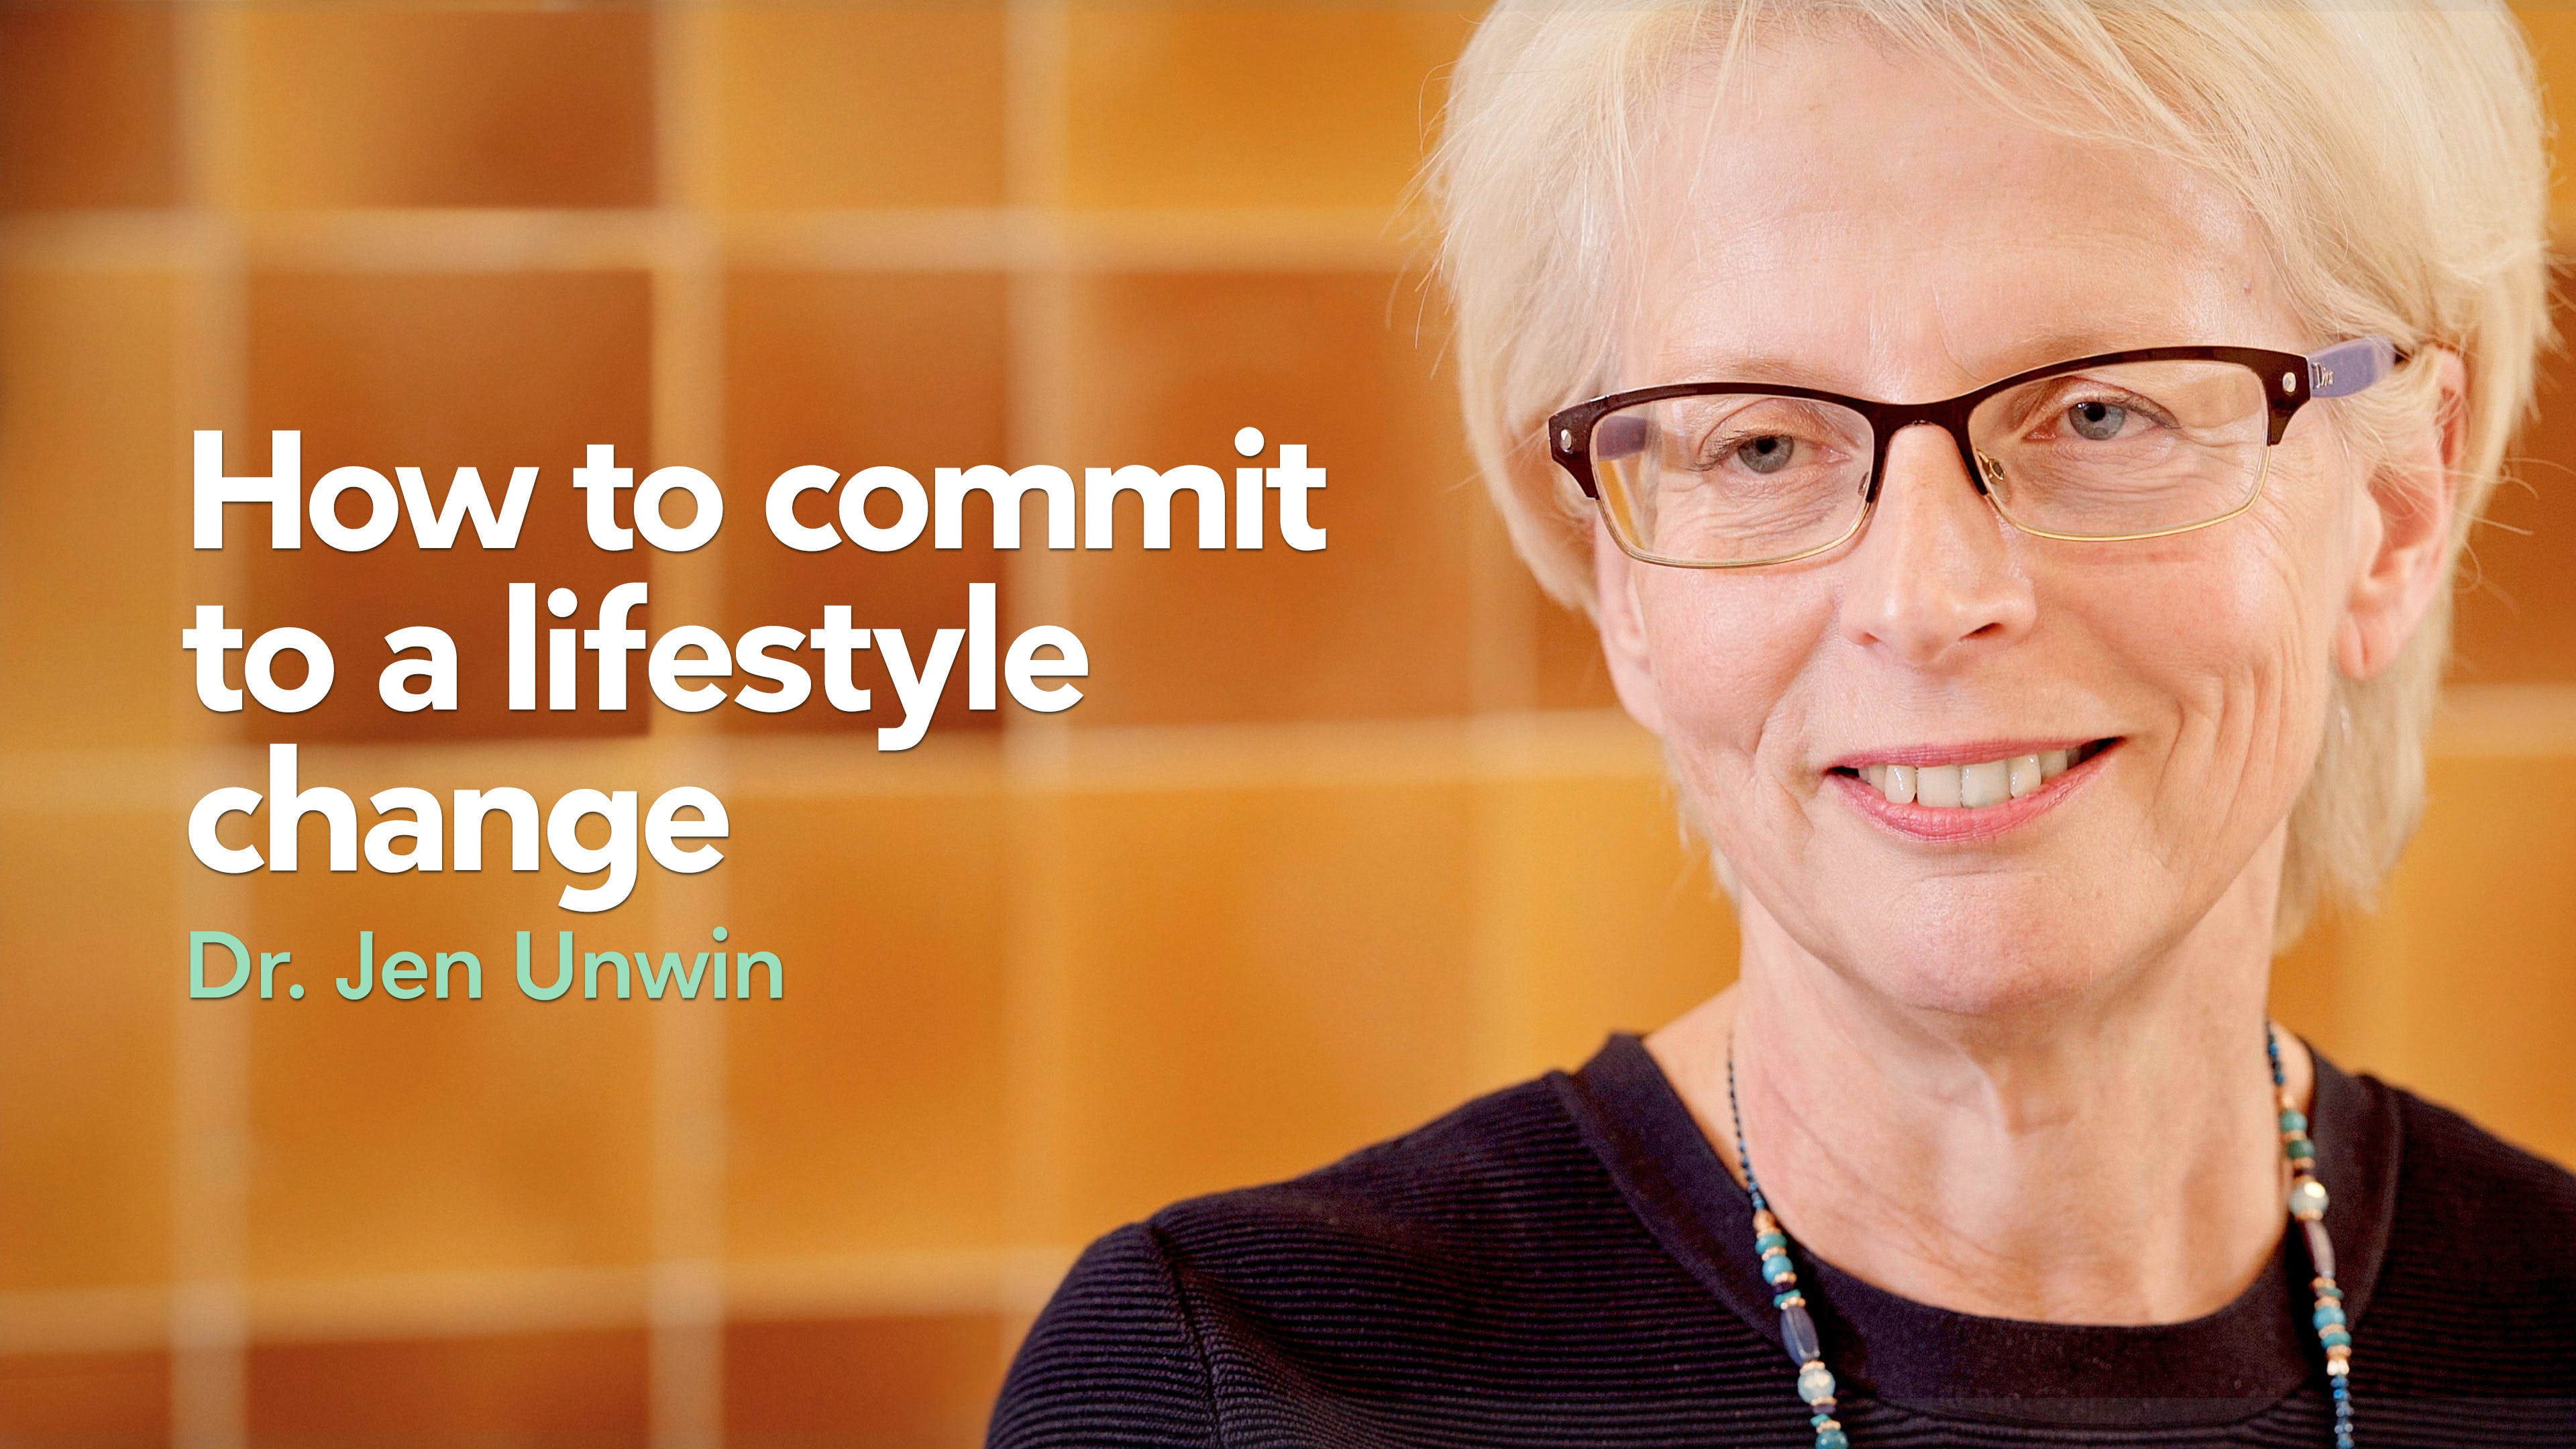 How to commit to a lifestyle change